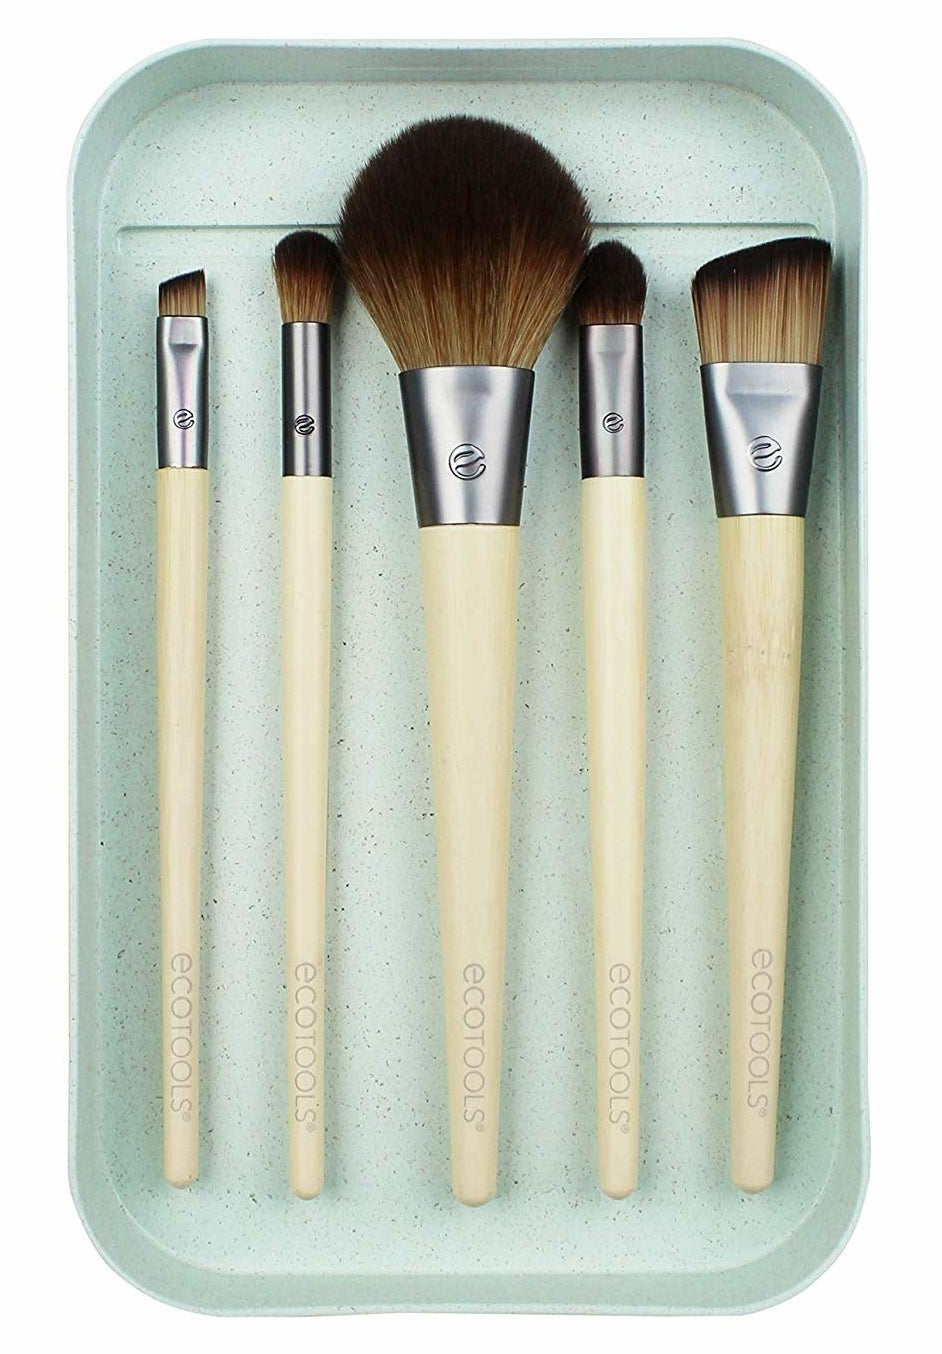 the five makeup brushes